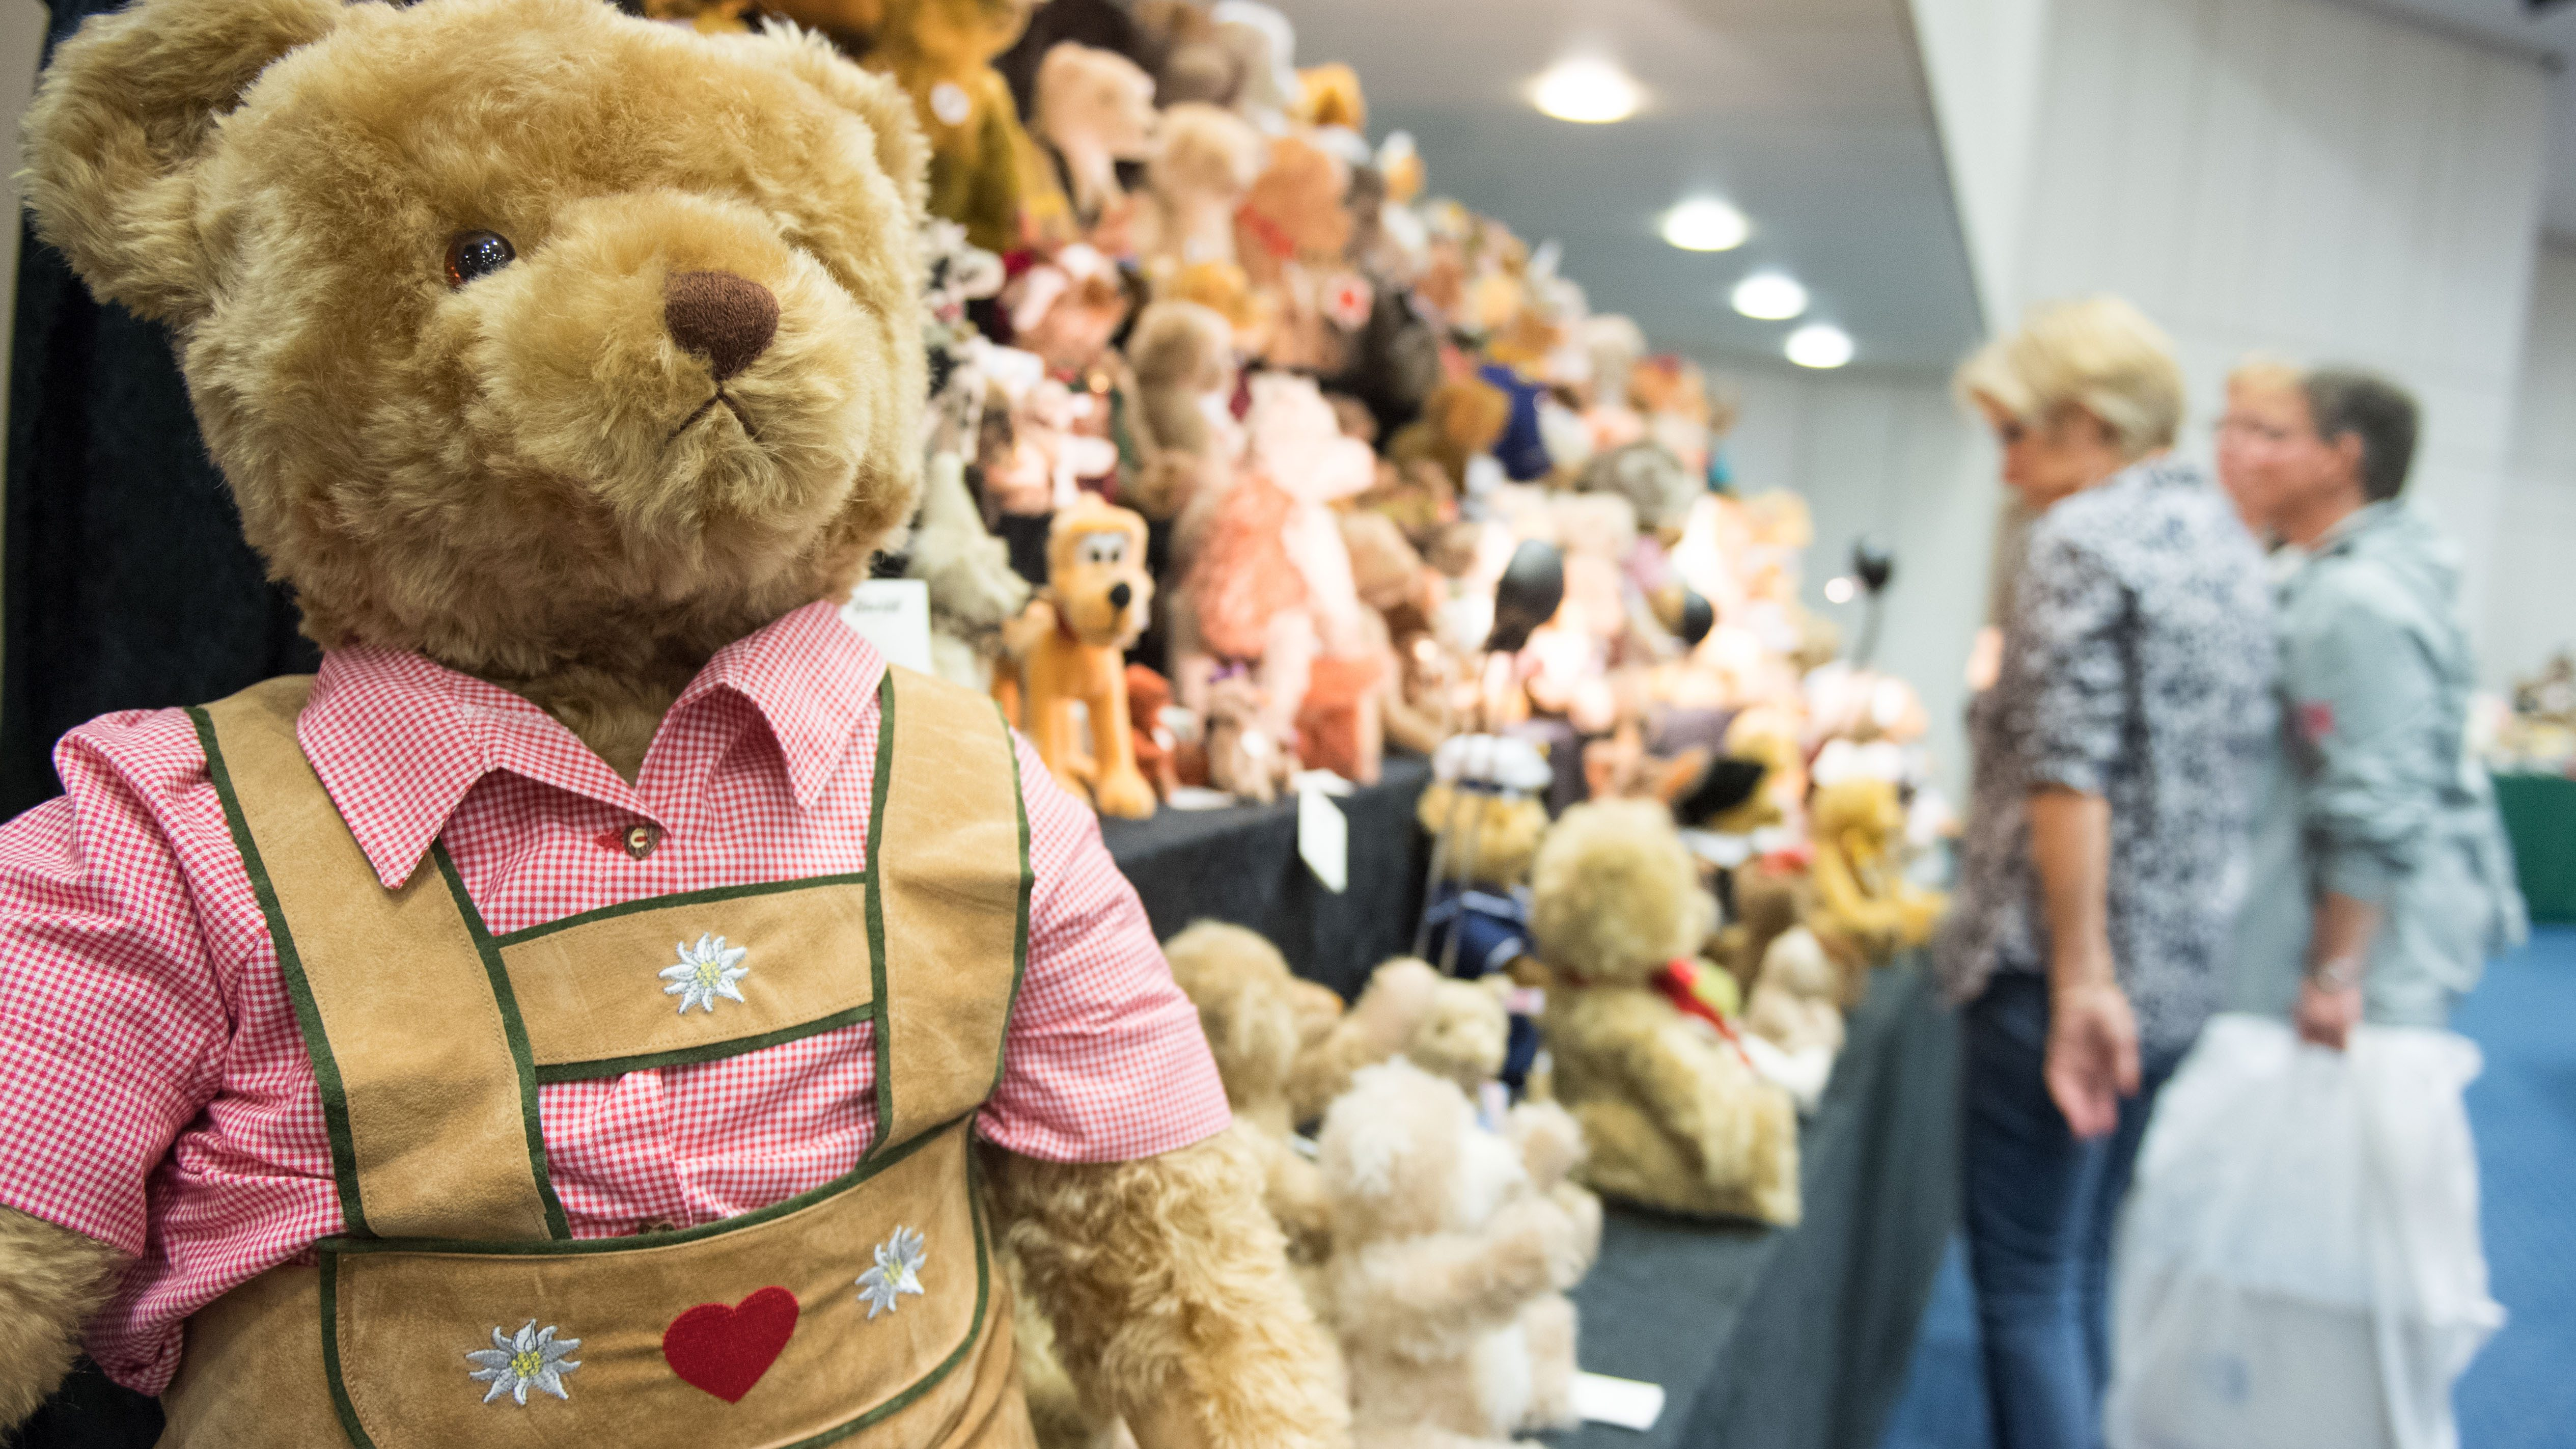 Teddy bears are on display at the Euro Teddy 2016 trade show in Essen, Germany, 08 October 2016. Some 160 exhibitors showcase their products at the teddy bear trade show.